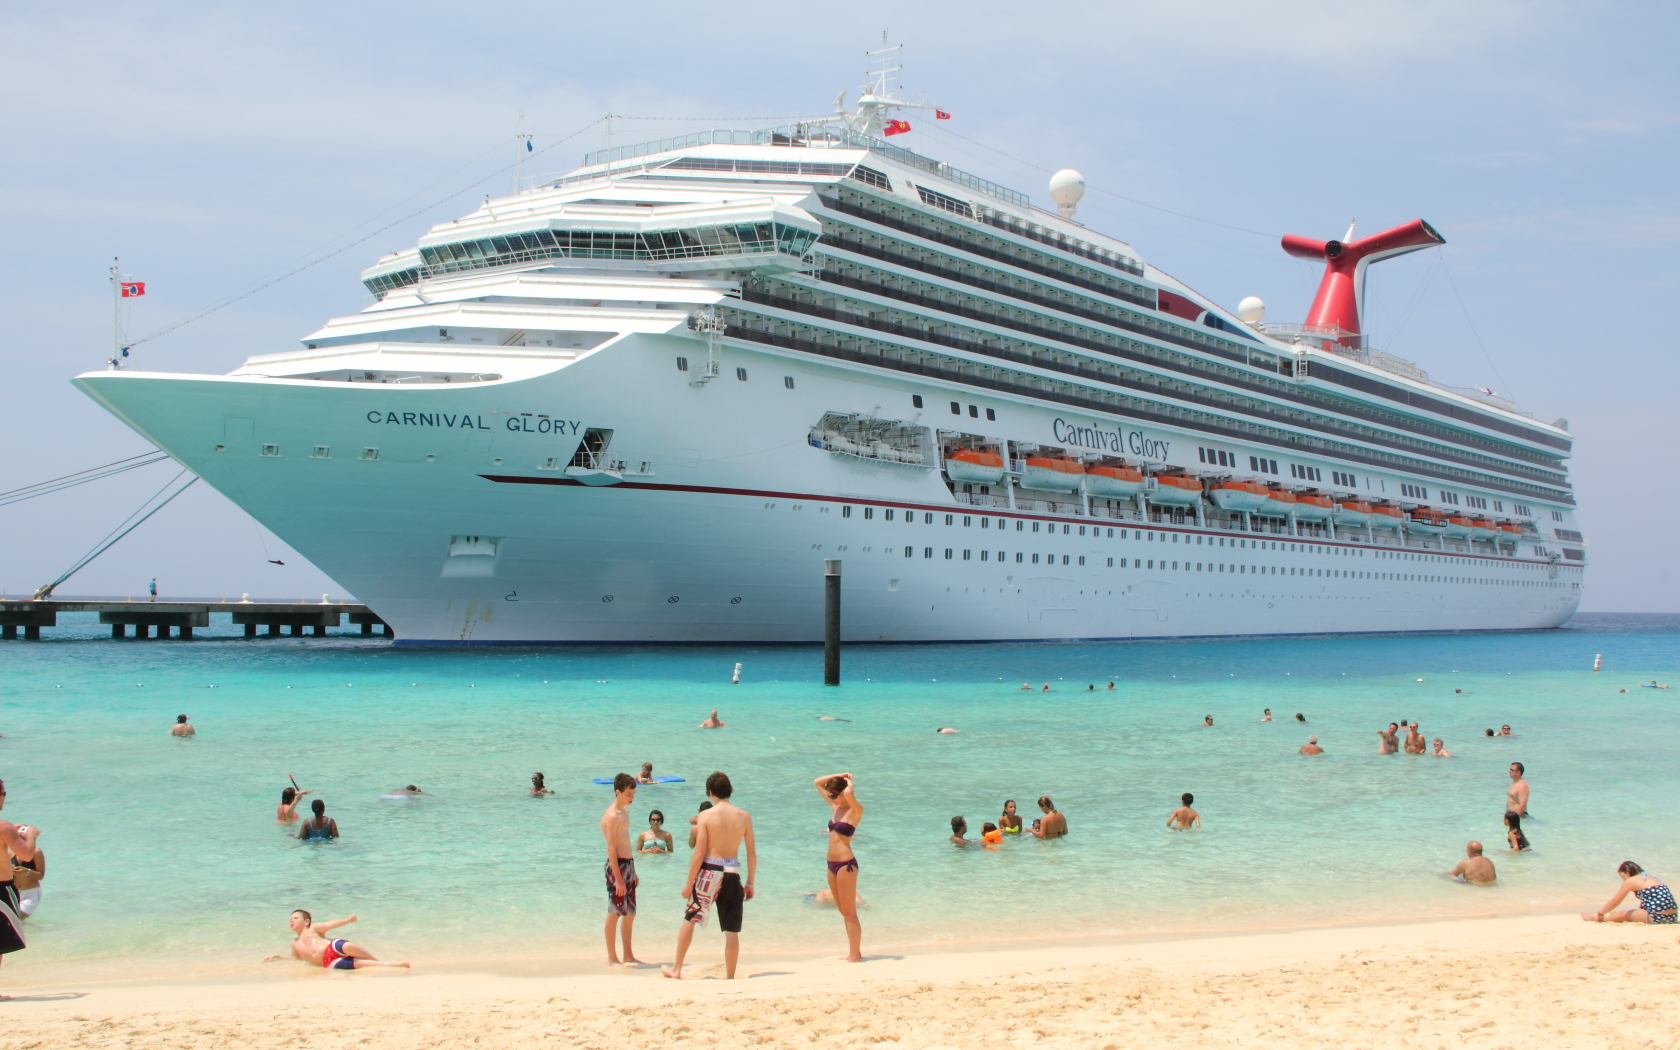 Carnival Glory Cruise Review by Jim Zim 1680x1050